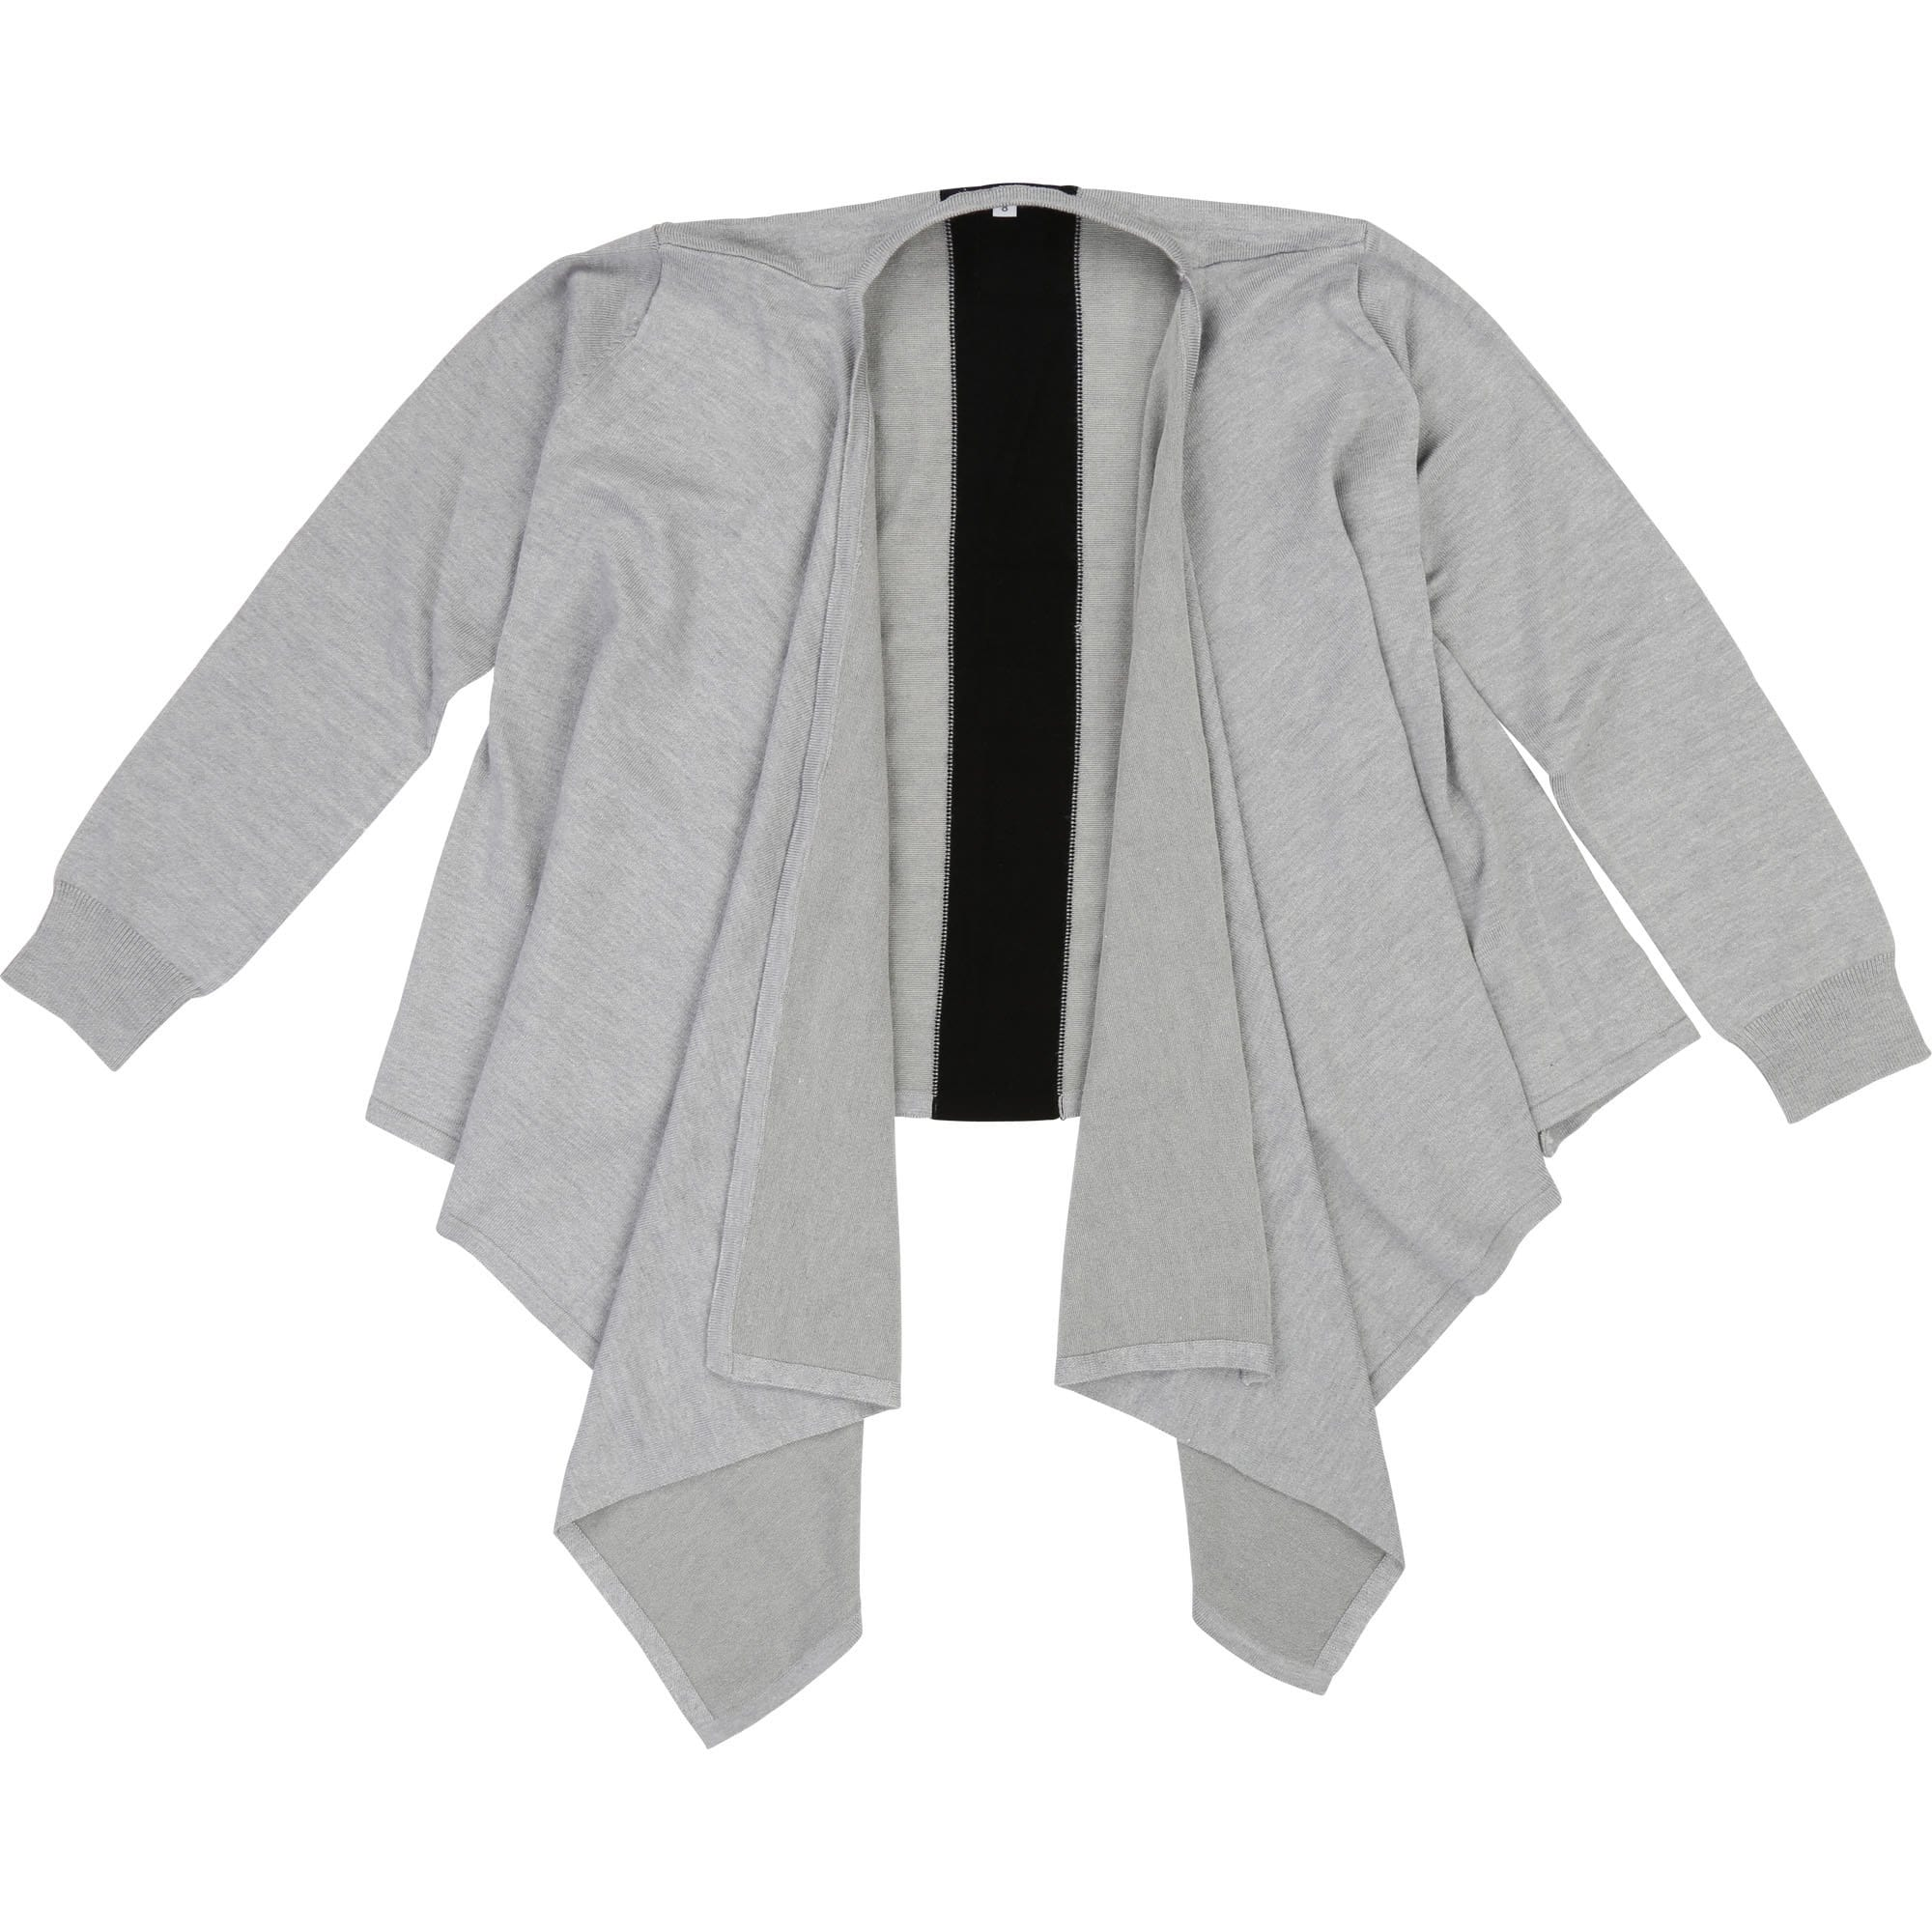 DKNY Knitted Cardigan Chine Grey D35Q13/A32 (4716740182147)